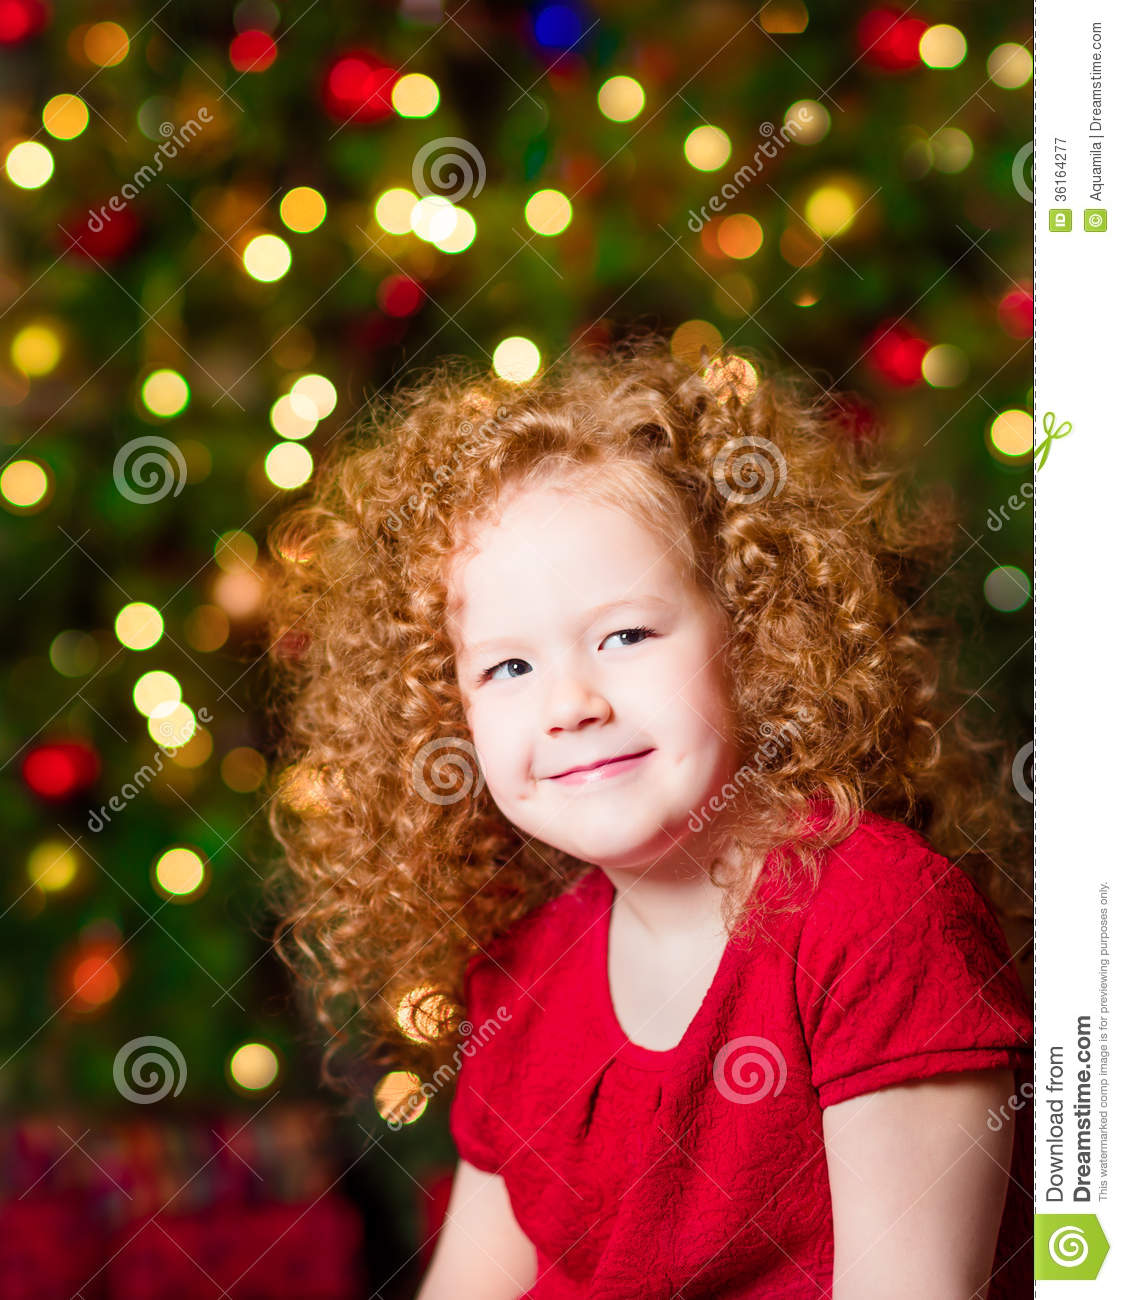 Little Girl Christmas Tree: Pretty Red-haired Little Girl Wearing Red Dress Sitting In